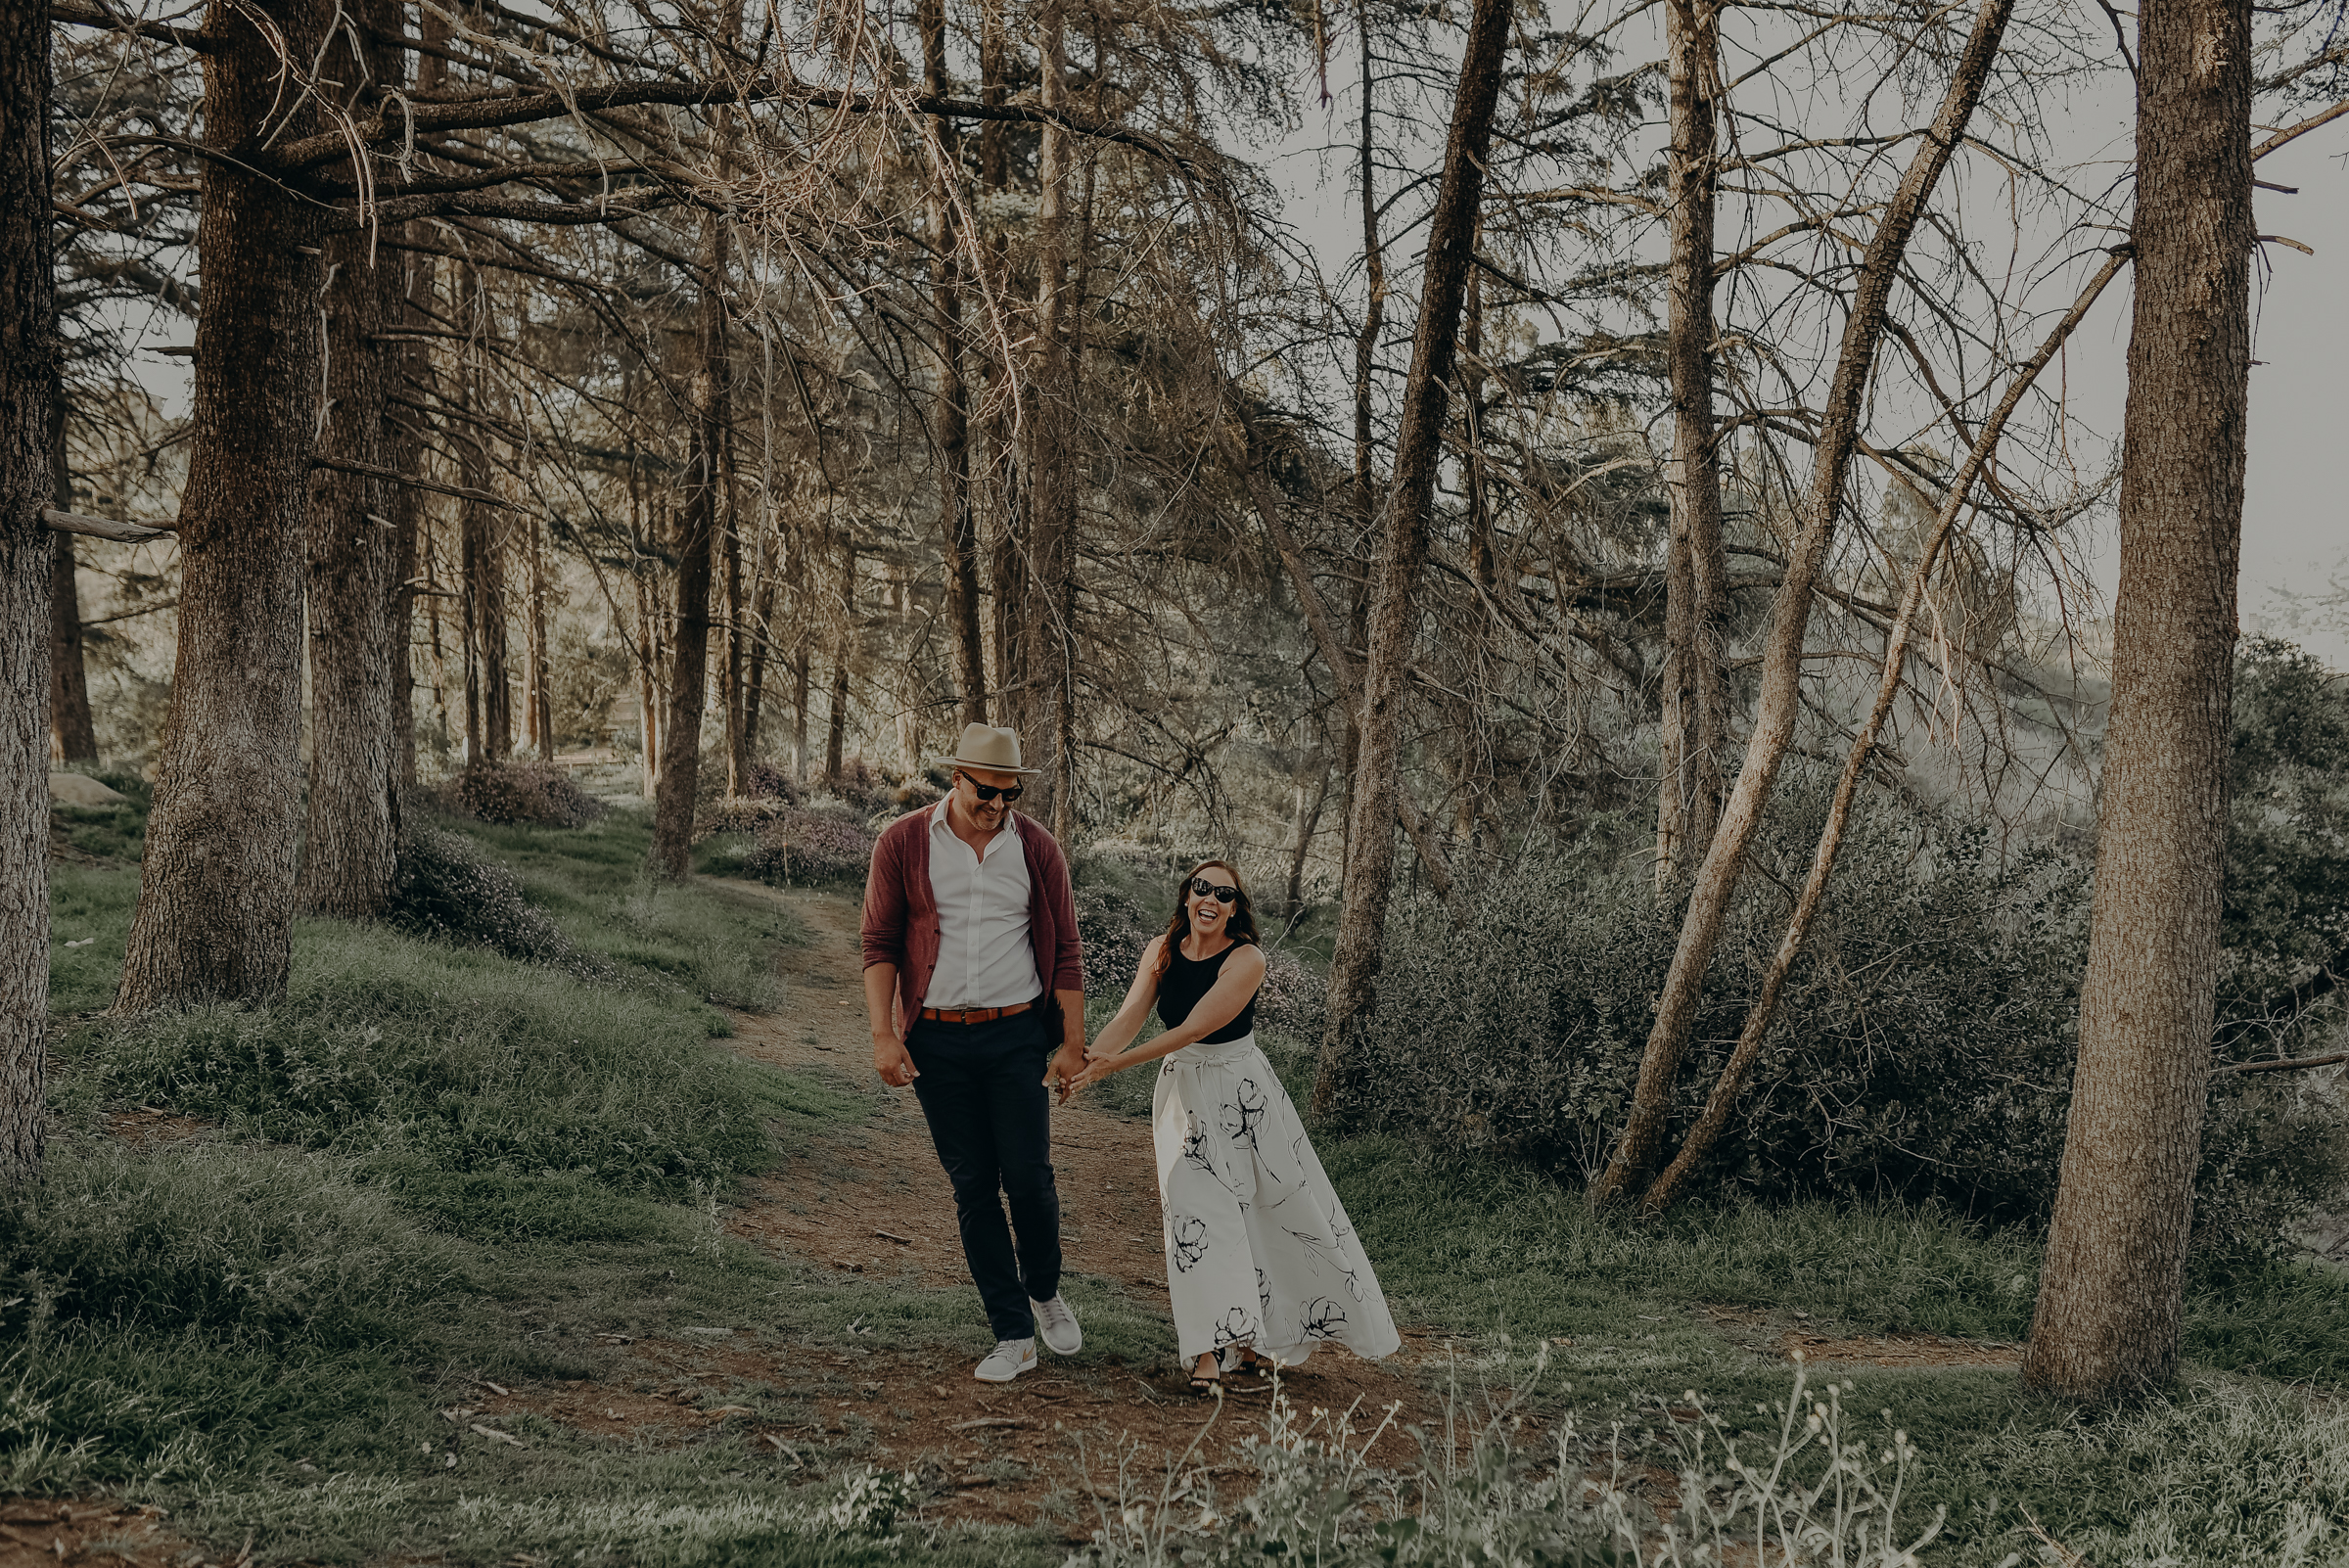 Los Angeles Wedding Photographers - Griffith Park Engagement - IsaiahAndTaylor.com-016.jpg